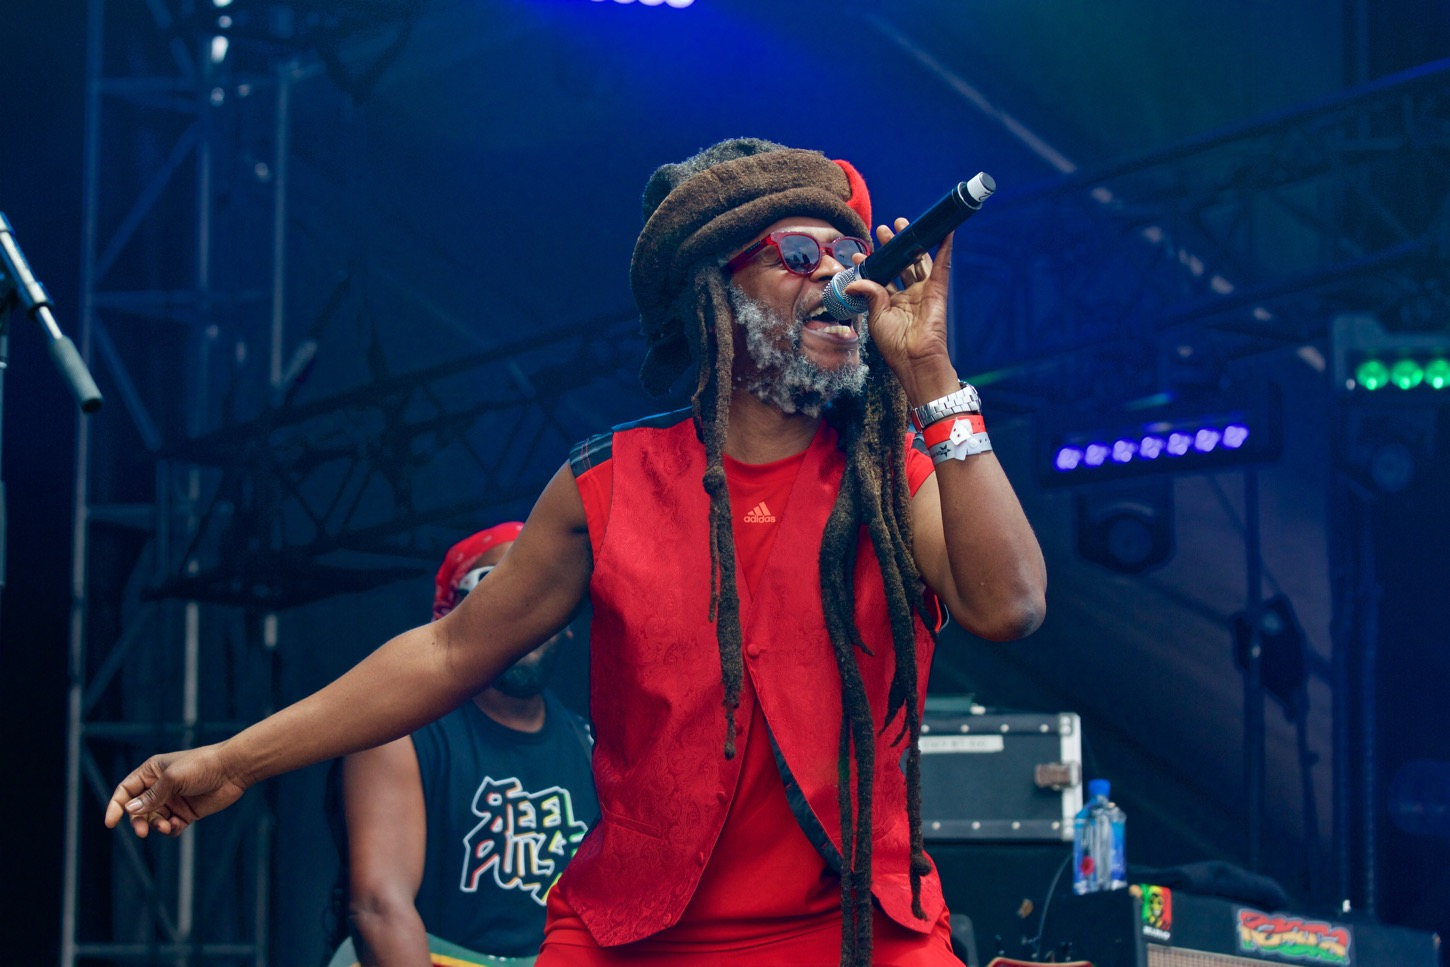 Steel Pulse at KAABOO 2016, September 17th. Photo by Derrick K. Lee, Esq. (@Methodman13) for www.BlurredCulture.com.